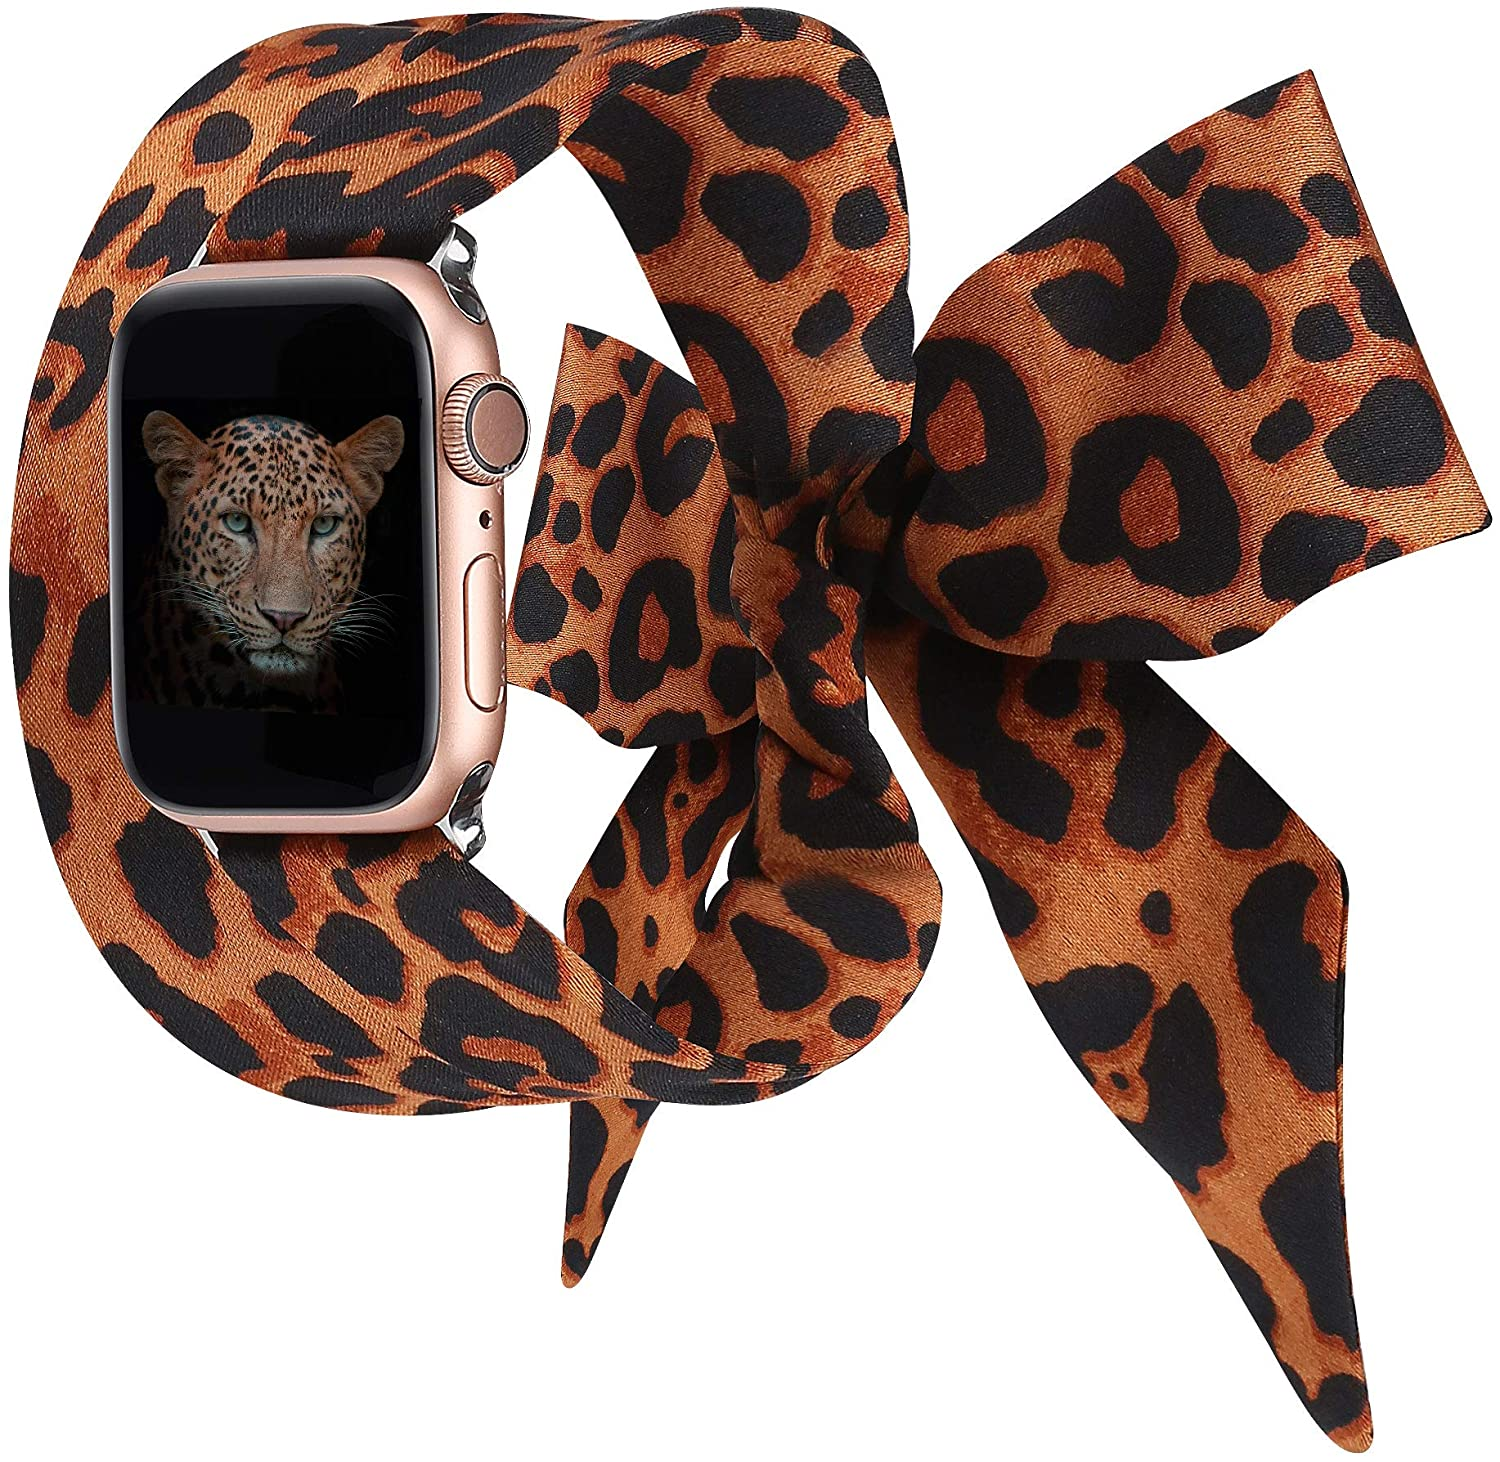 Wearlizer Compatible with Apple Watch Scarf Bands 38mm 40mm for iWatch Band Women Girls Fashion Scarf Replacement Wrist Strap for Apple Watch SE Series 6 5 4 3 2 1 - Orange Leopard